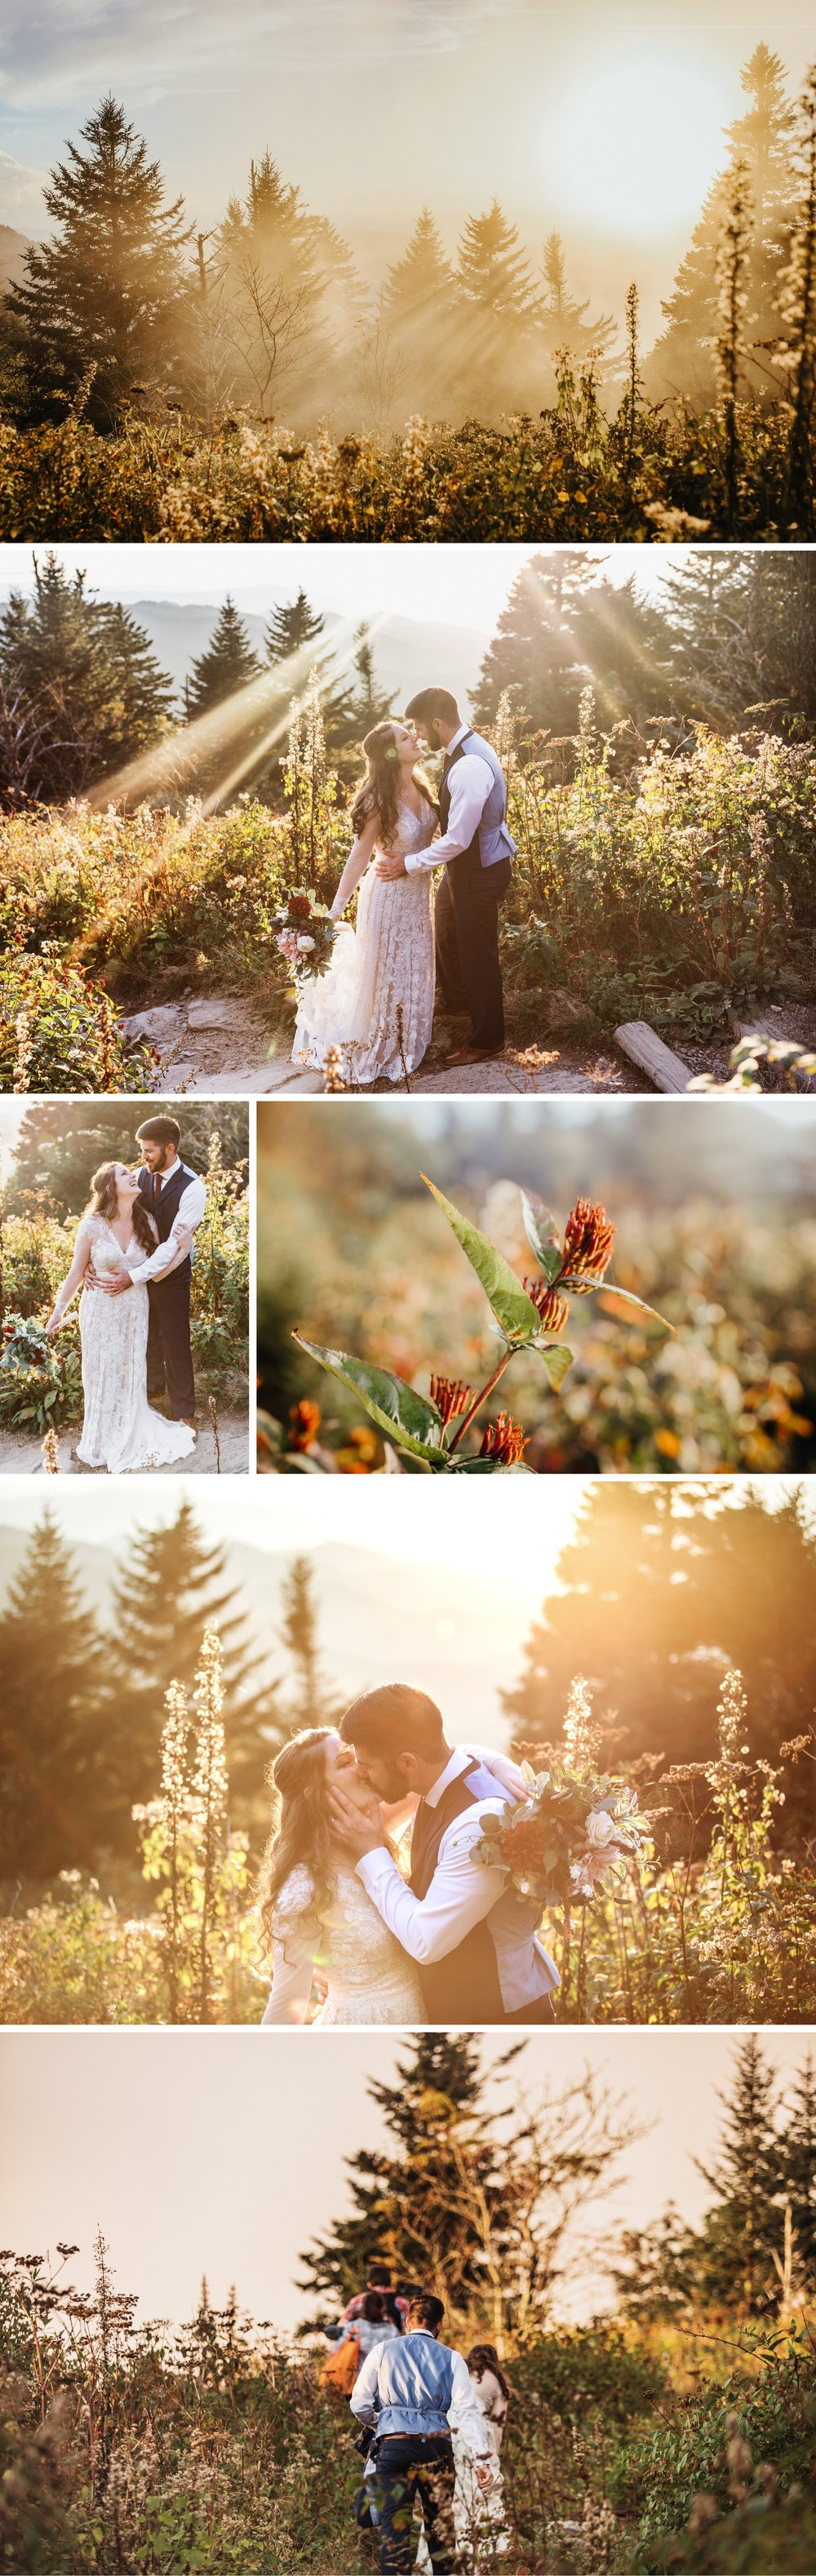 Great Smoky Mountain National Park Elopement- Cole + Rachel- Photographer Shaina DeCiryan-11.20184.jpg